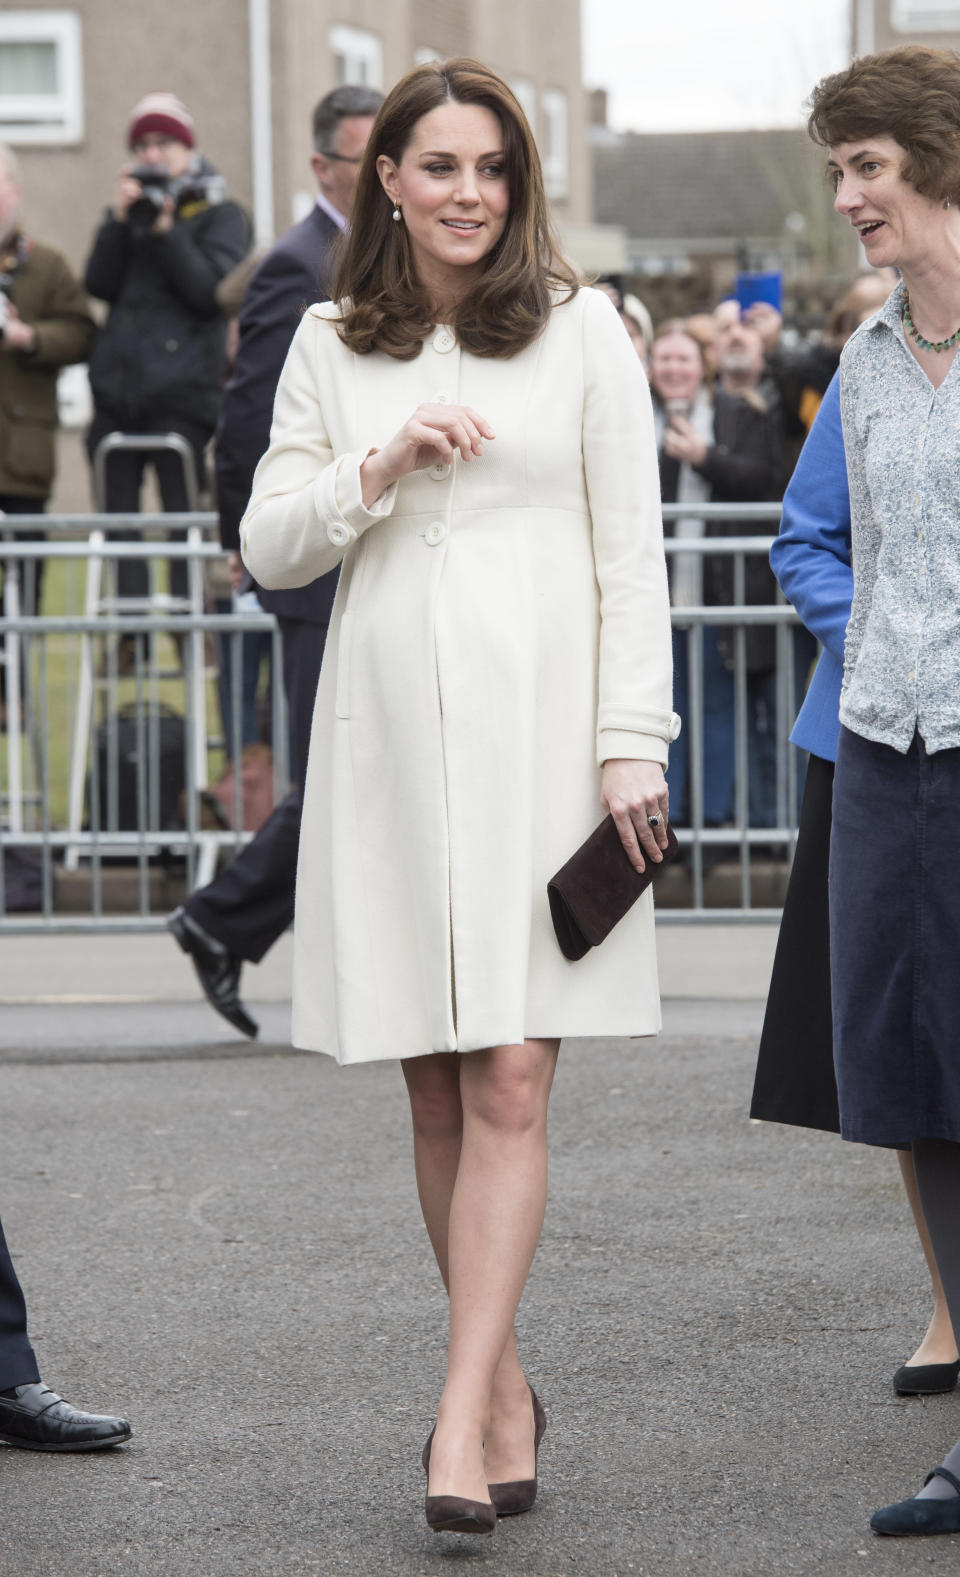 <p>The Duchess looked typically stylish in a £69 cream JoJo Maman Bebe maternity coat, she'd previously worn on a visit to the set of Downton Abbey when she was pregnant wih Princess Charlotte. She kept her accessories simple with classic brown court shoes and a matching clutch.<br><br>The Duchess was visiting Pegasus primary school in Oxford to learn about how the charity Family Links had helped pupils and their families through emotional health and wellbeing issues. [Photo: Getty] </p>